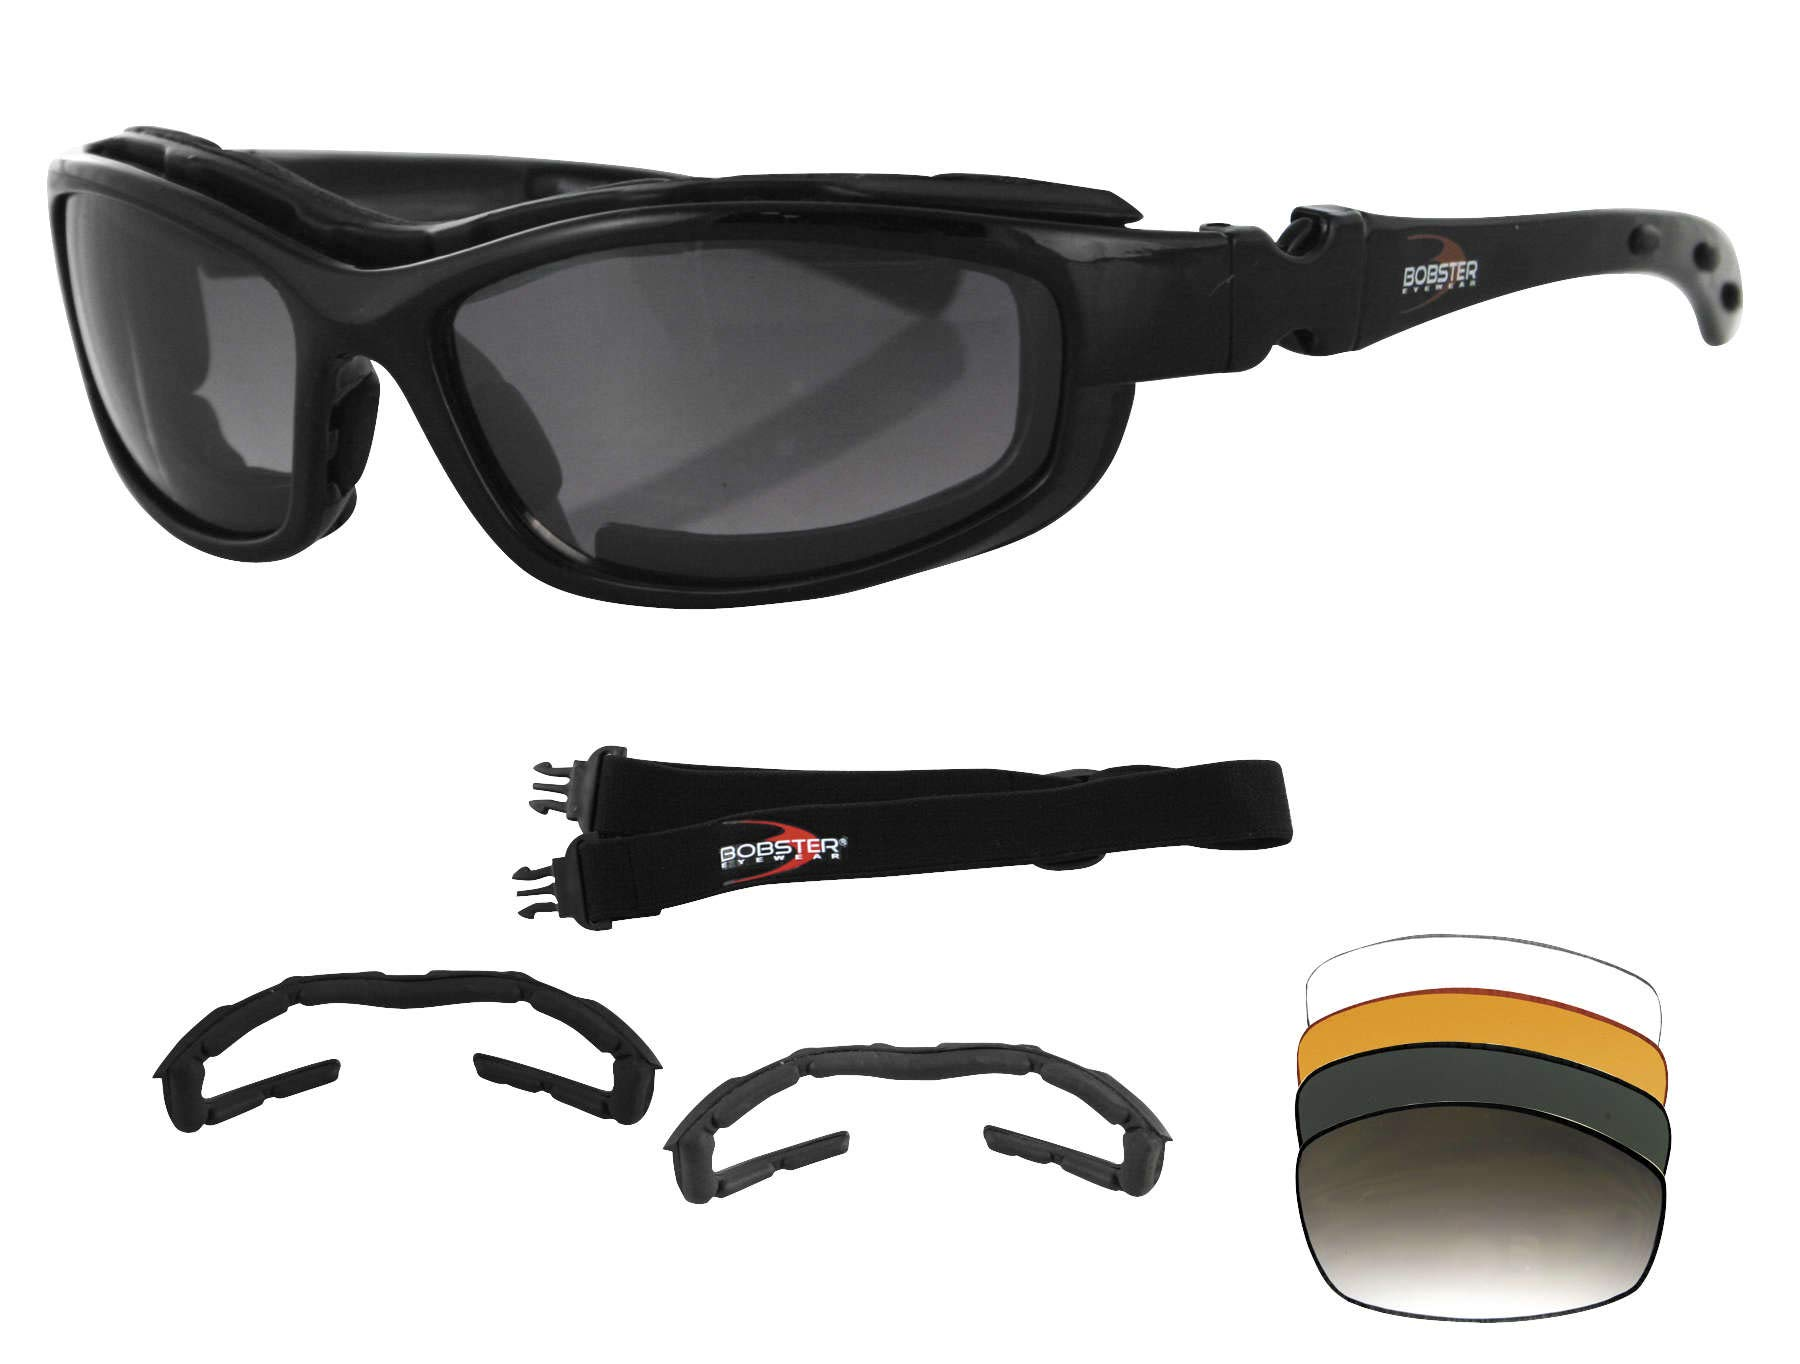 Bobster Eyewear Road Hog 2 Blk Convert/Intch Brh2001 New